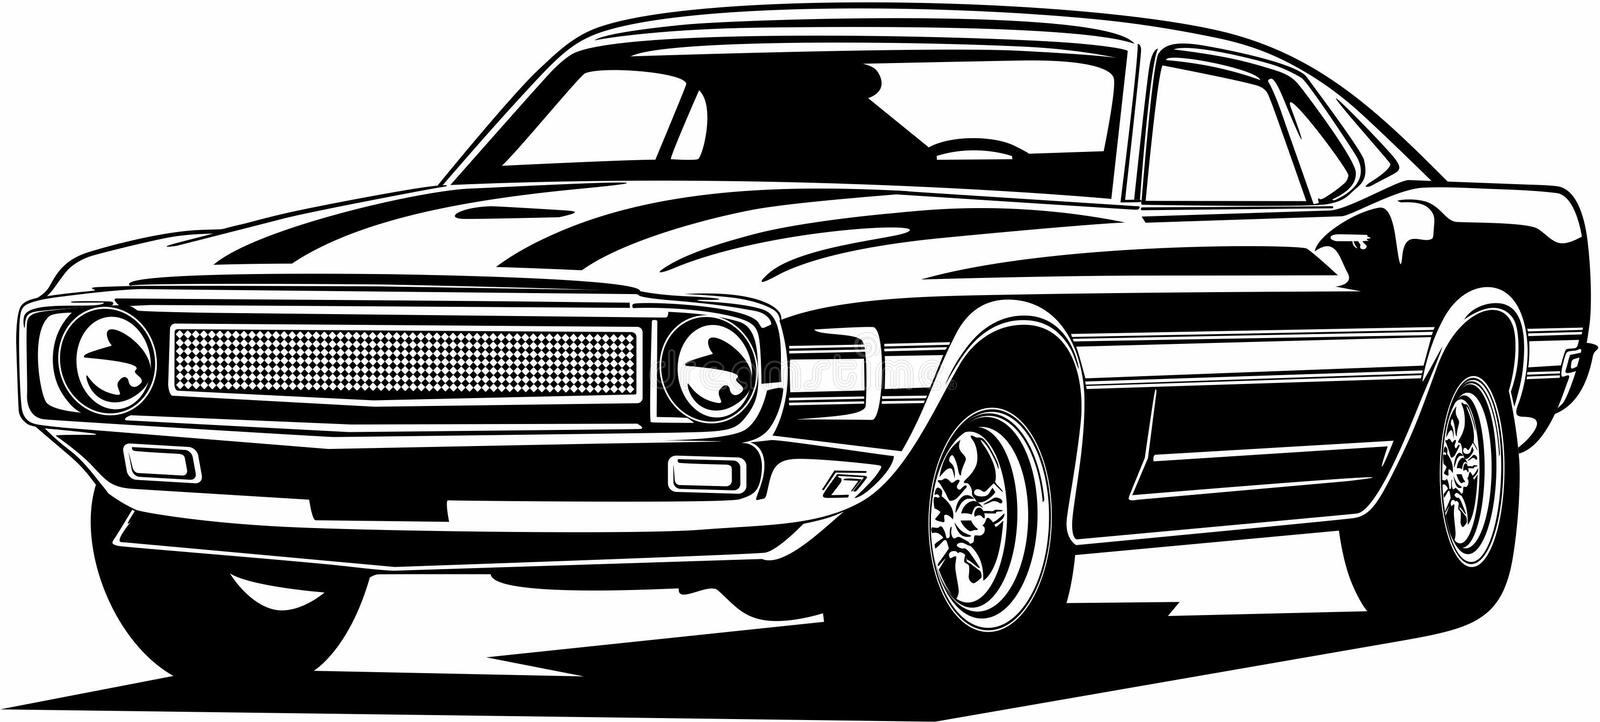 Cobra Blue sticker decal Mustang Ford Shelby muscle classic retro vintage race